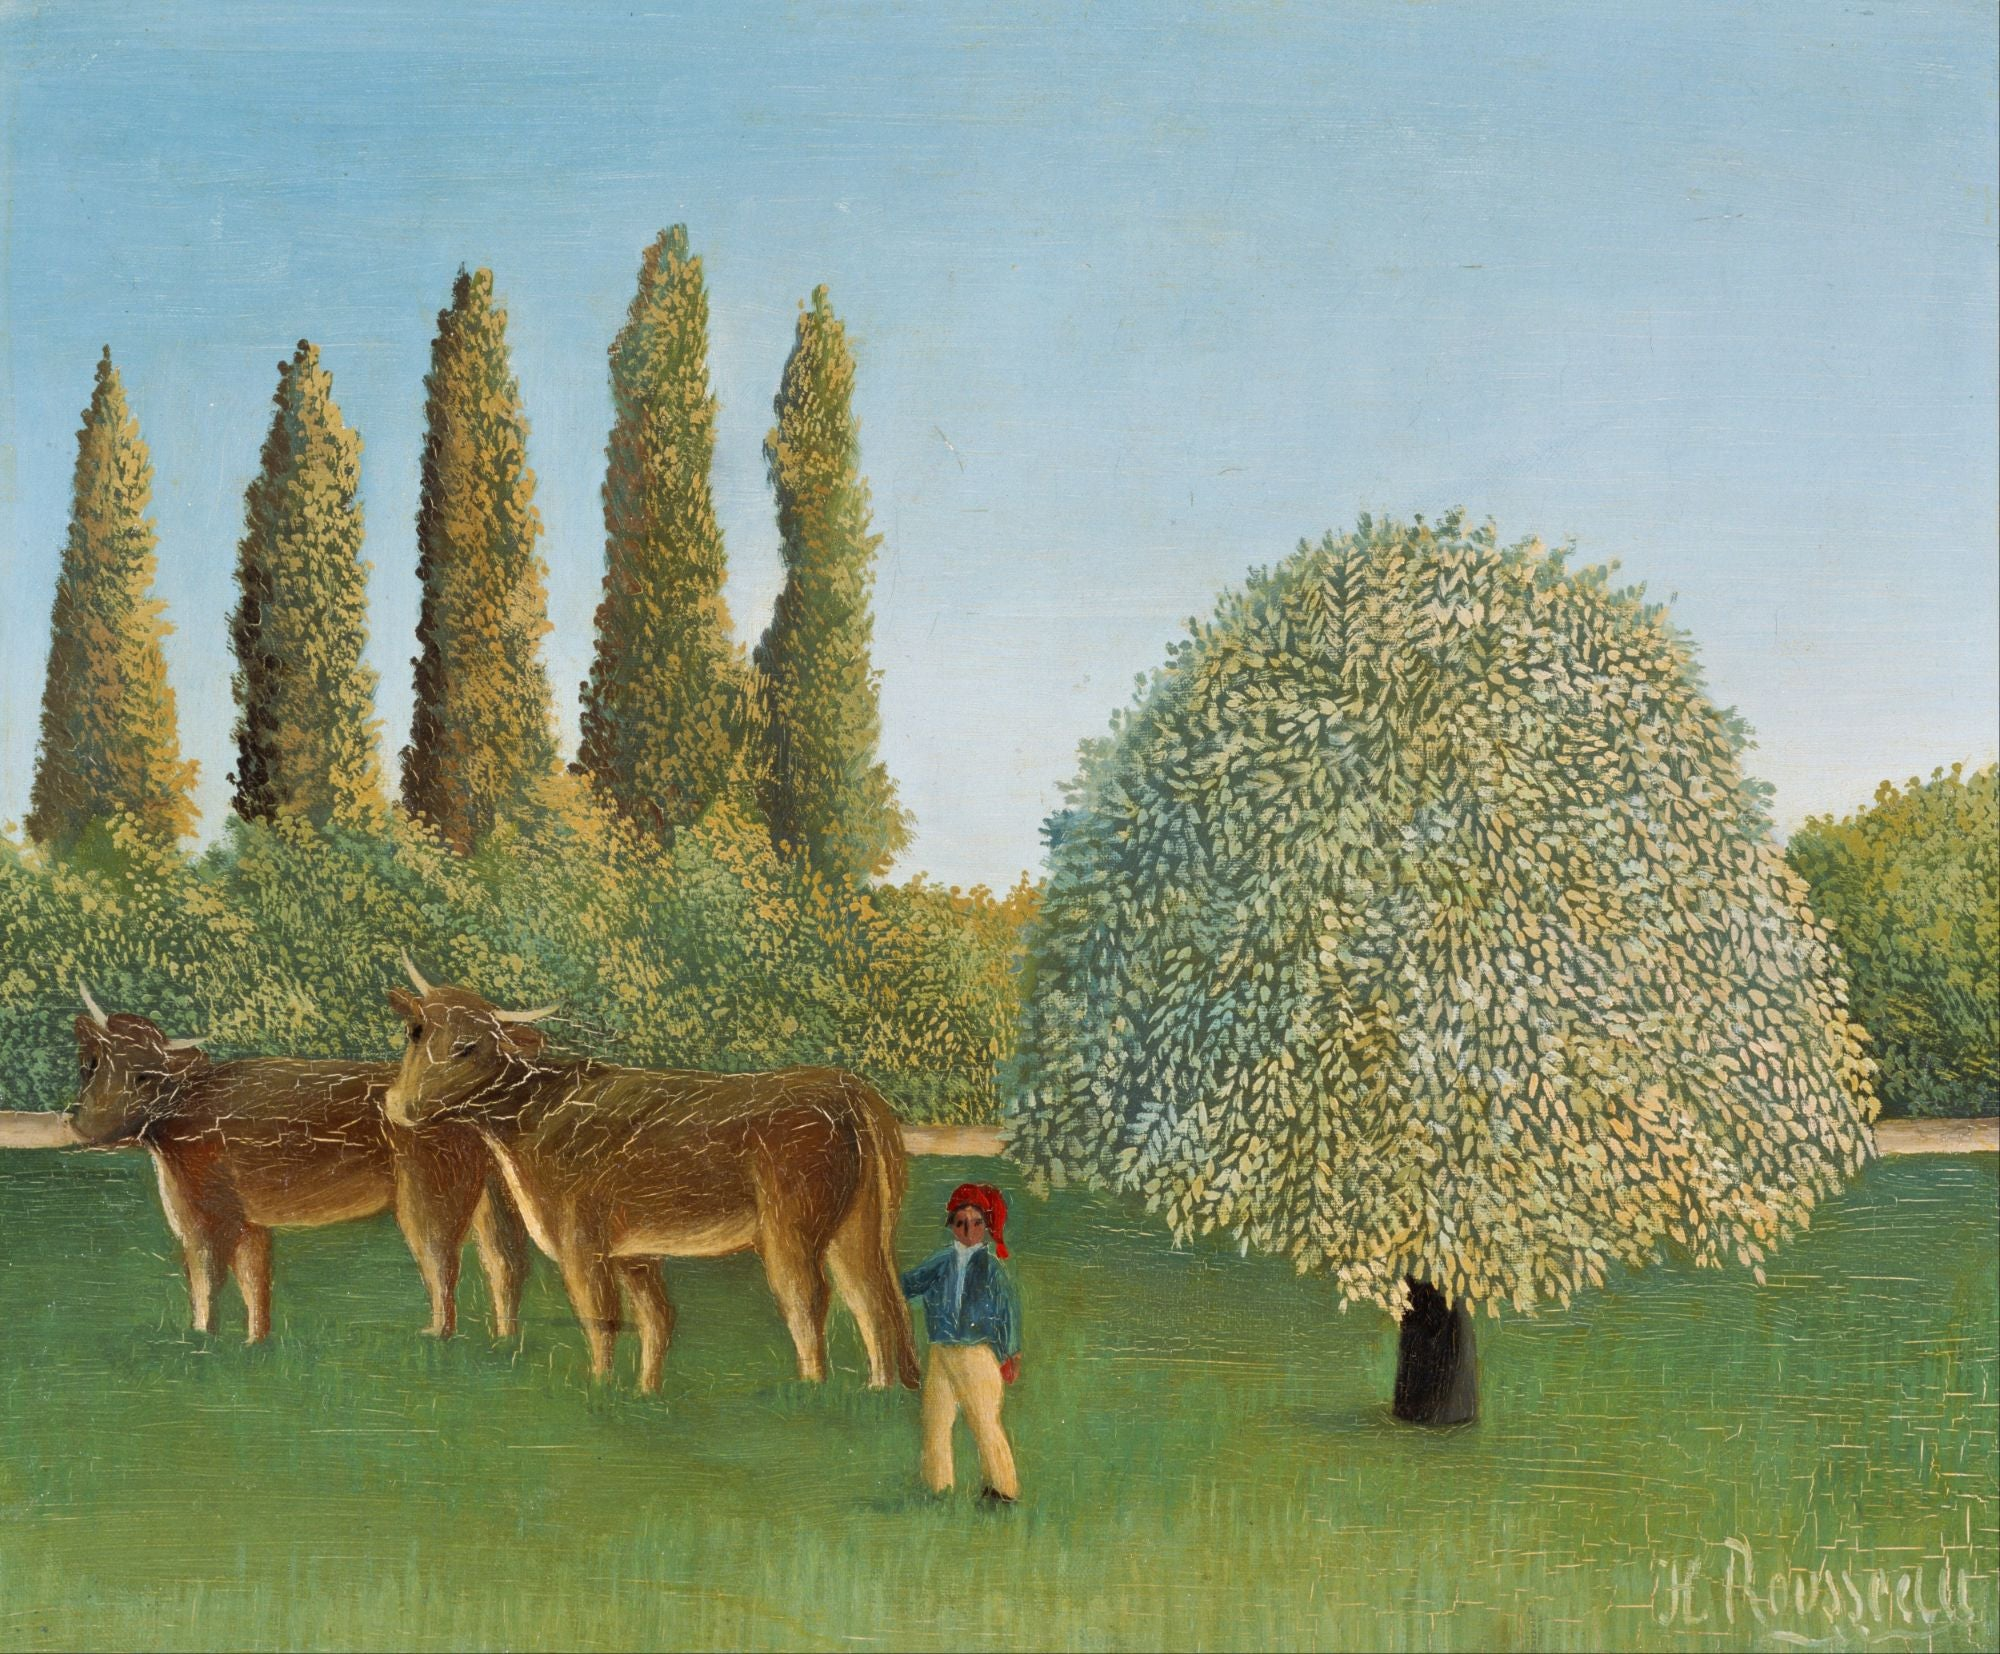 Henri Rousseau | Buy Posters, Frames, Canvas, Digital Art & Large Size Prints Of The Famous Modern Master's Artworks